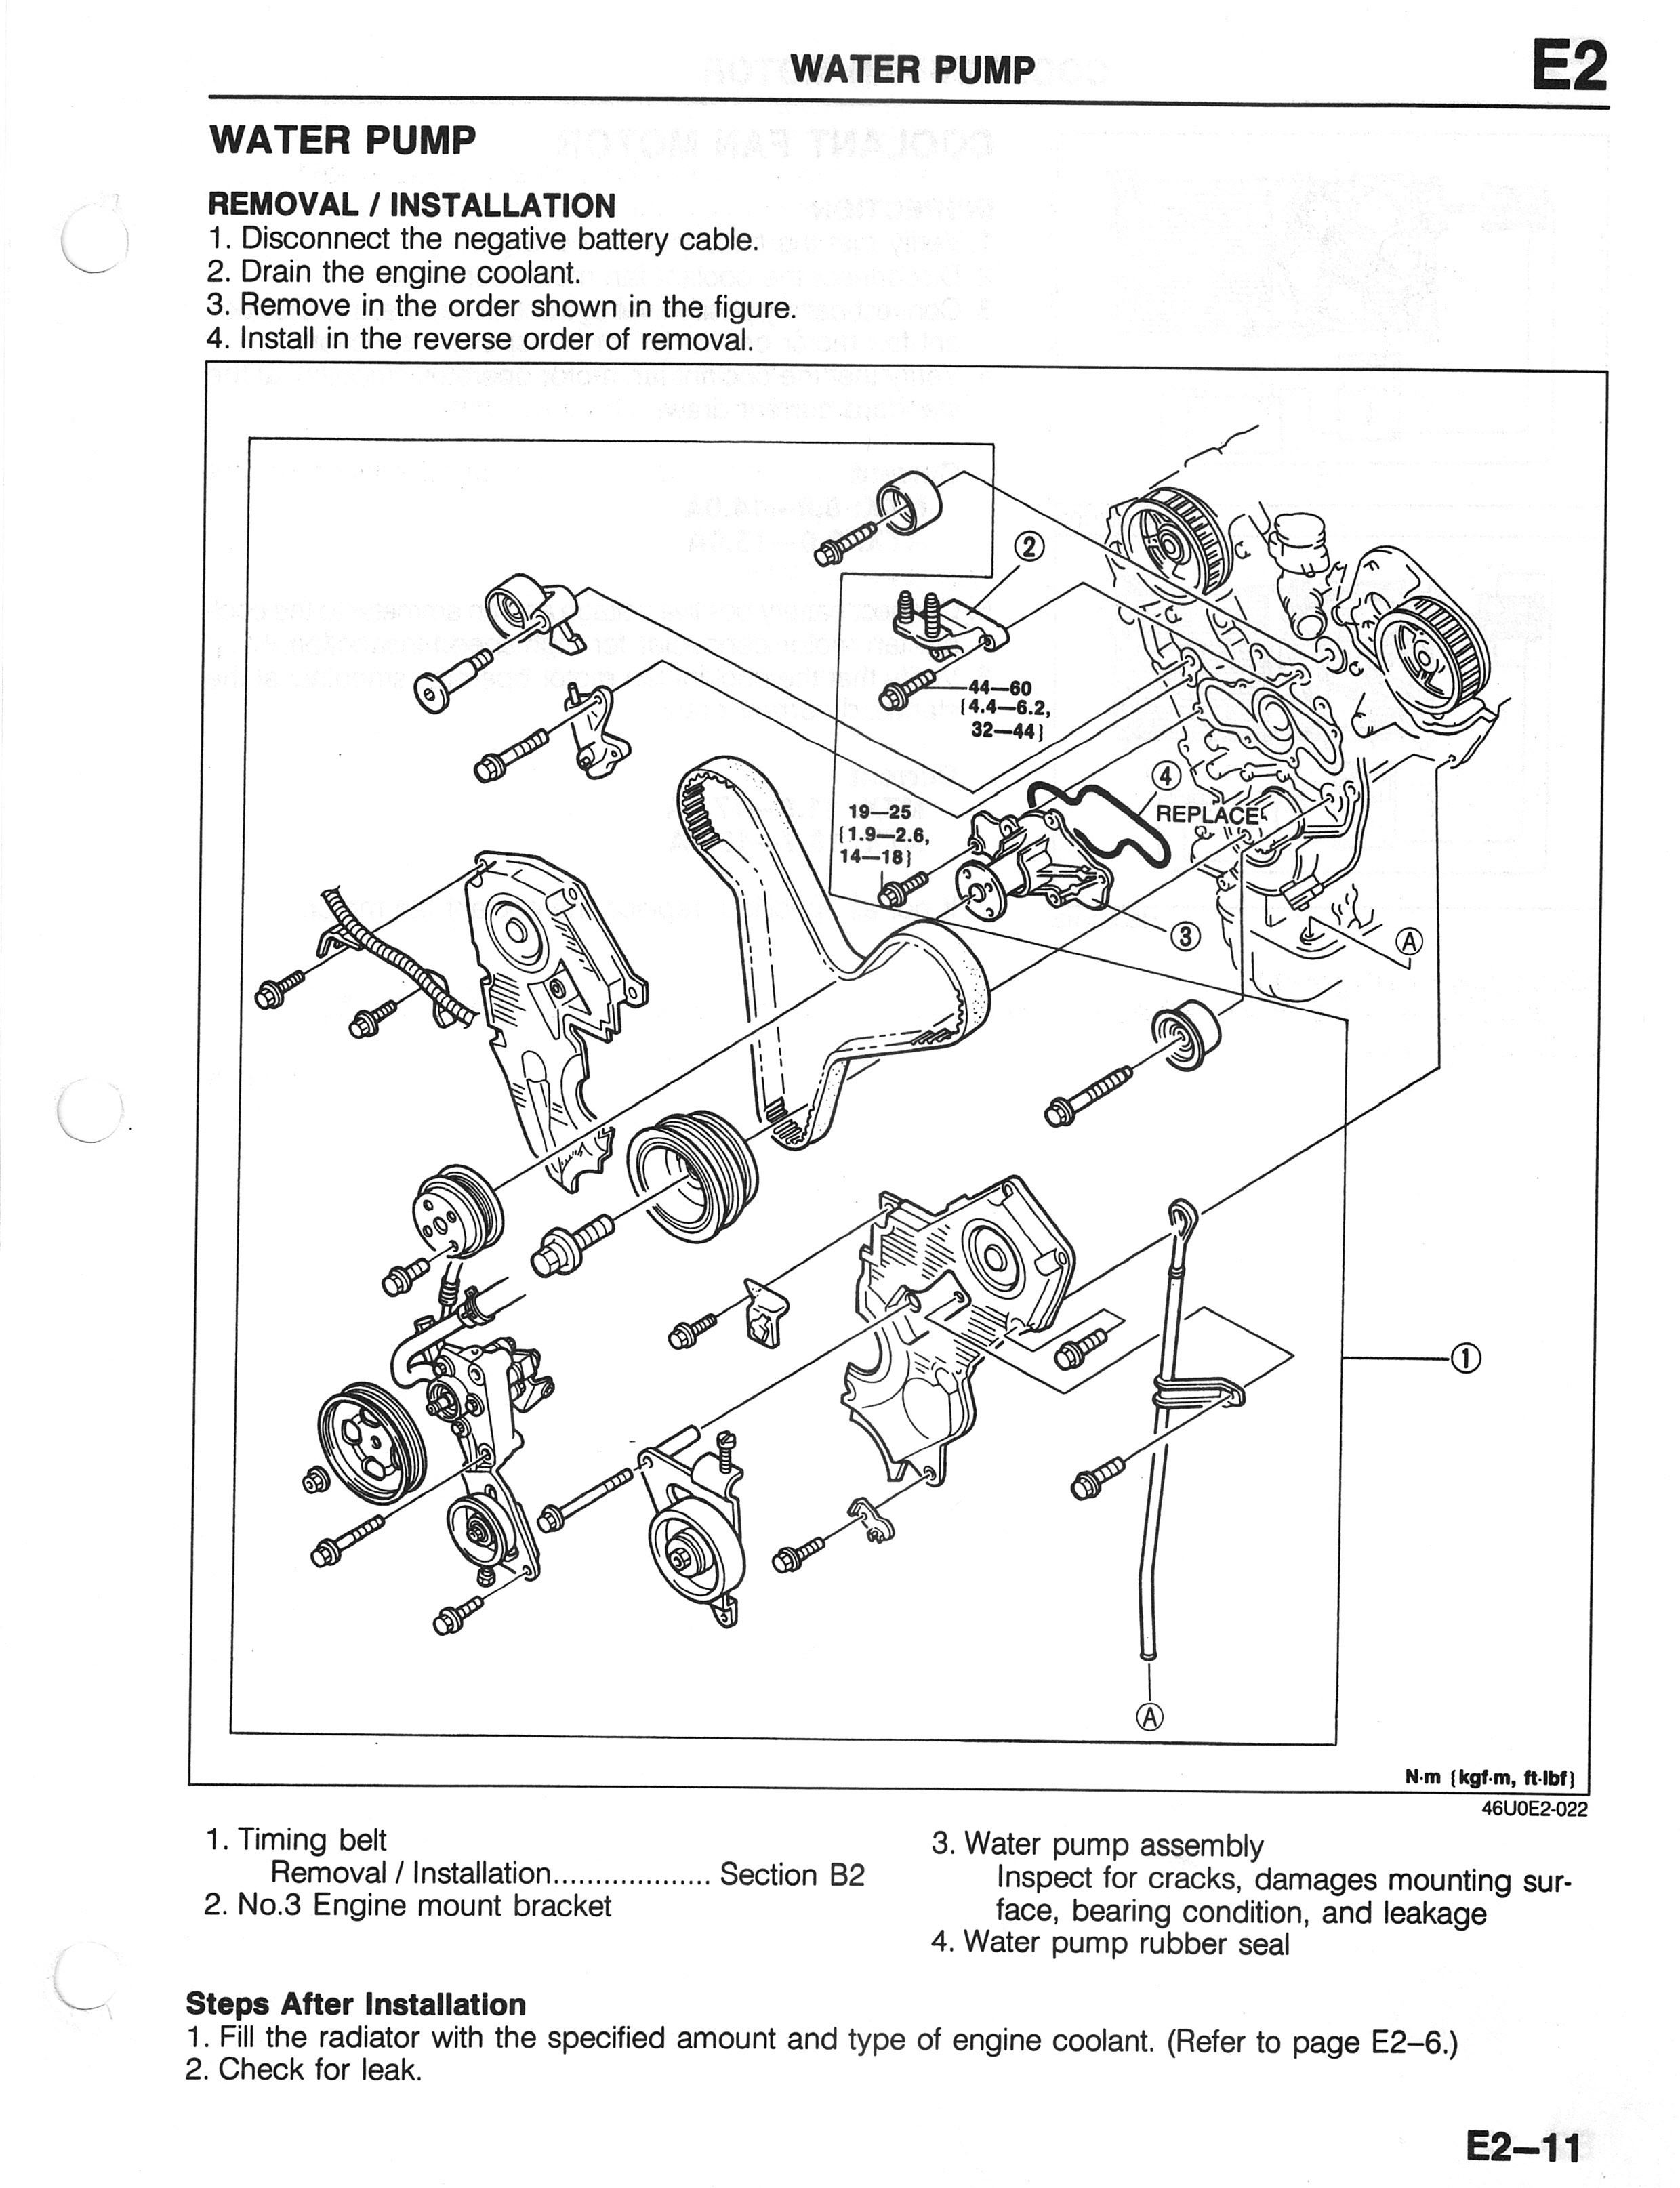 1990 Buick Skylark Fuse Box Another Blog About Wiring Diagram 1996 For A Mazda 626 Worksheet And U2022 Rh Bookinc Co